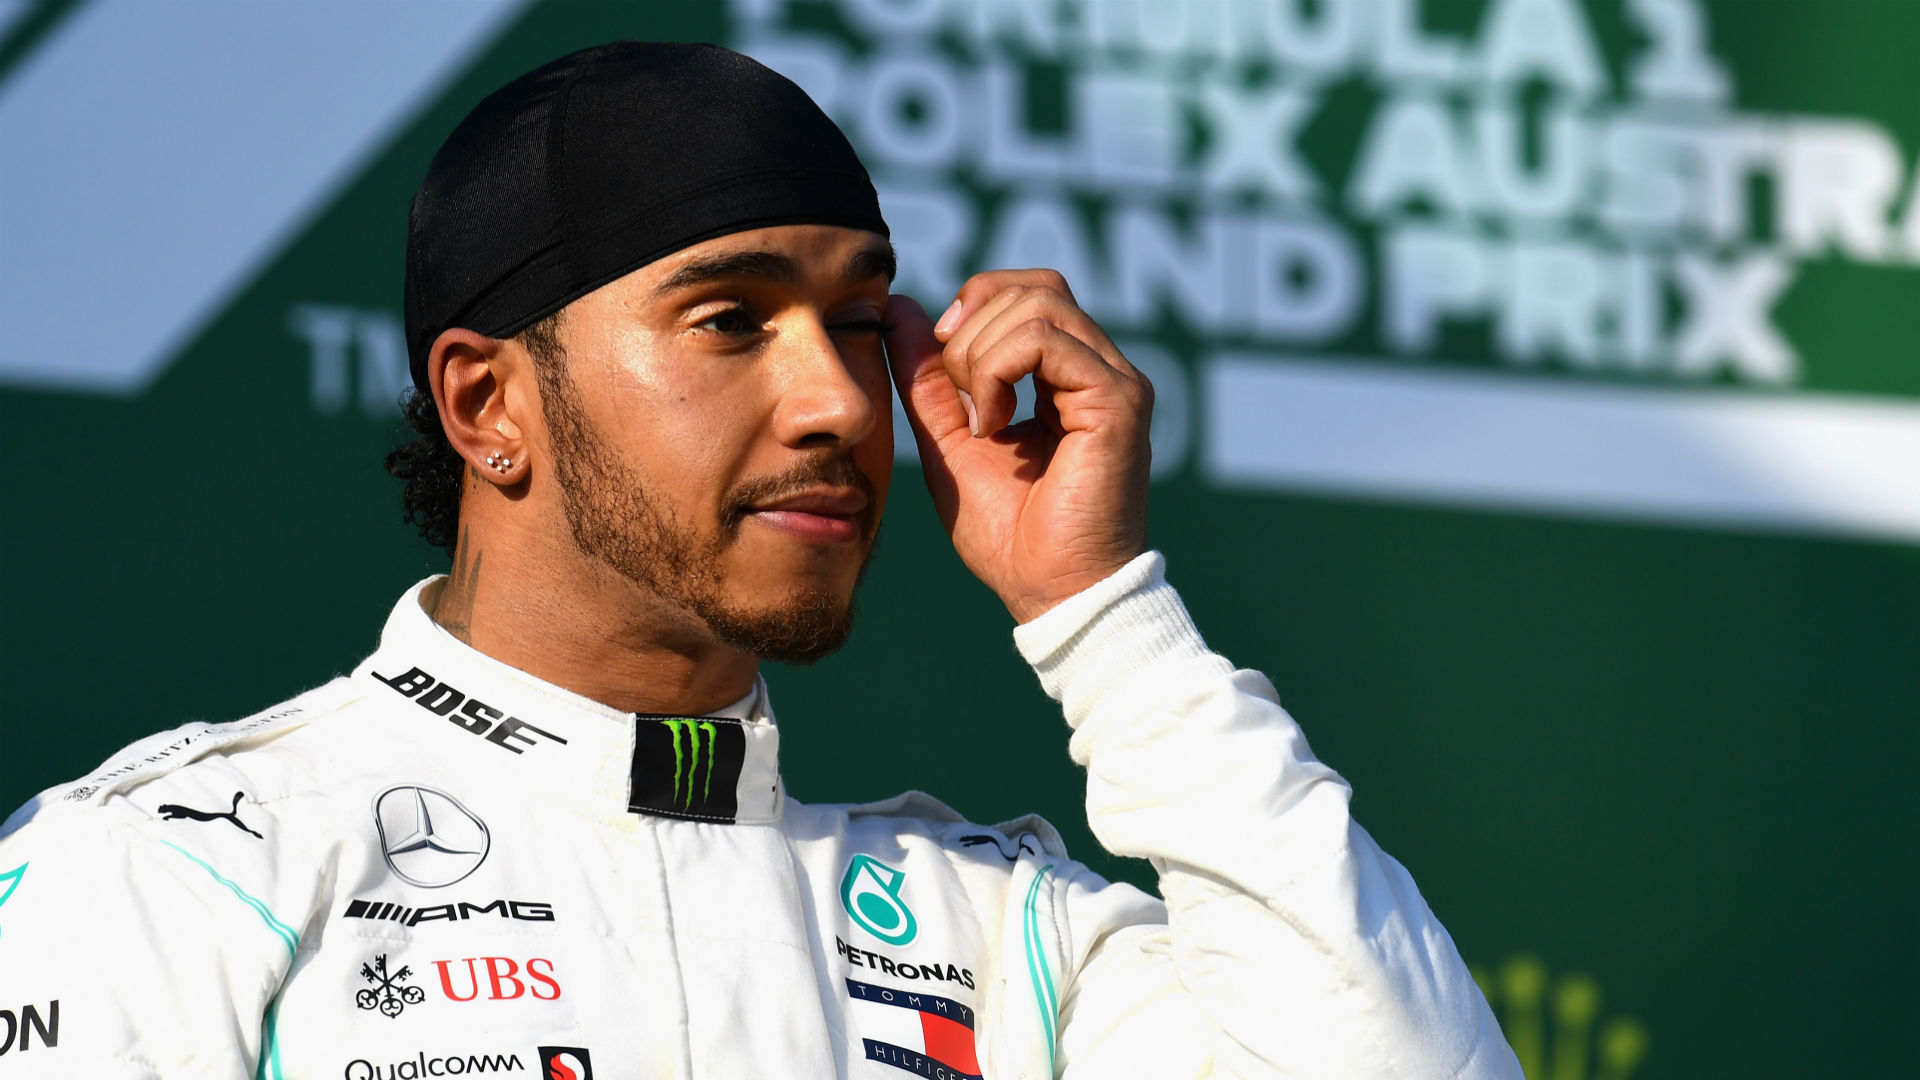 Hamilton 'didn't do a good enough job' in damaged car